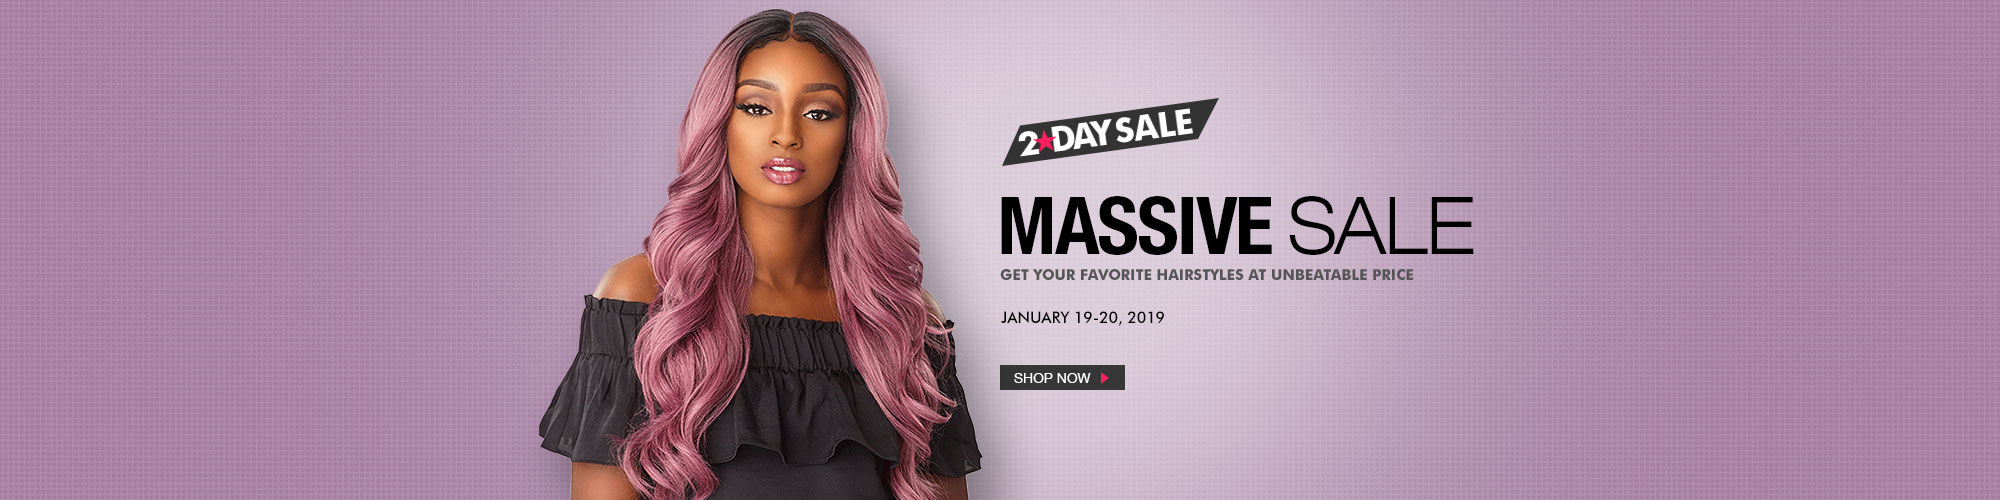 2-DAY MASSIVE SALE